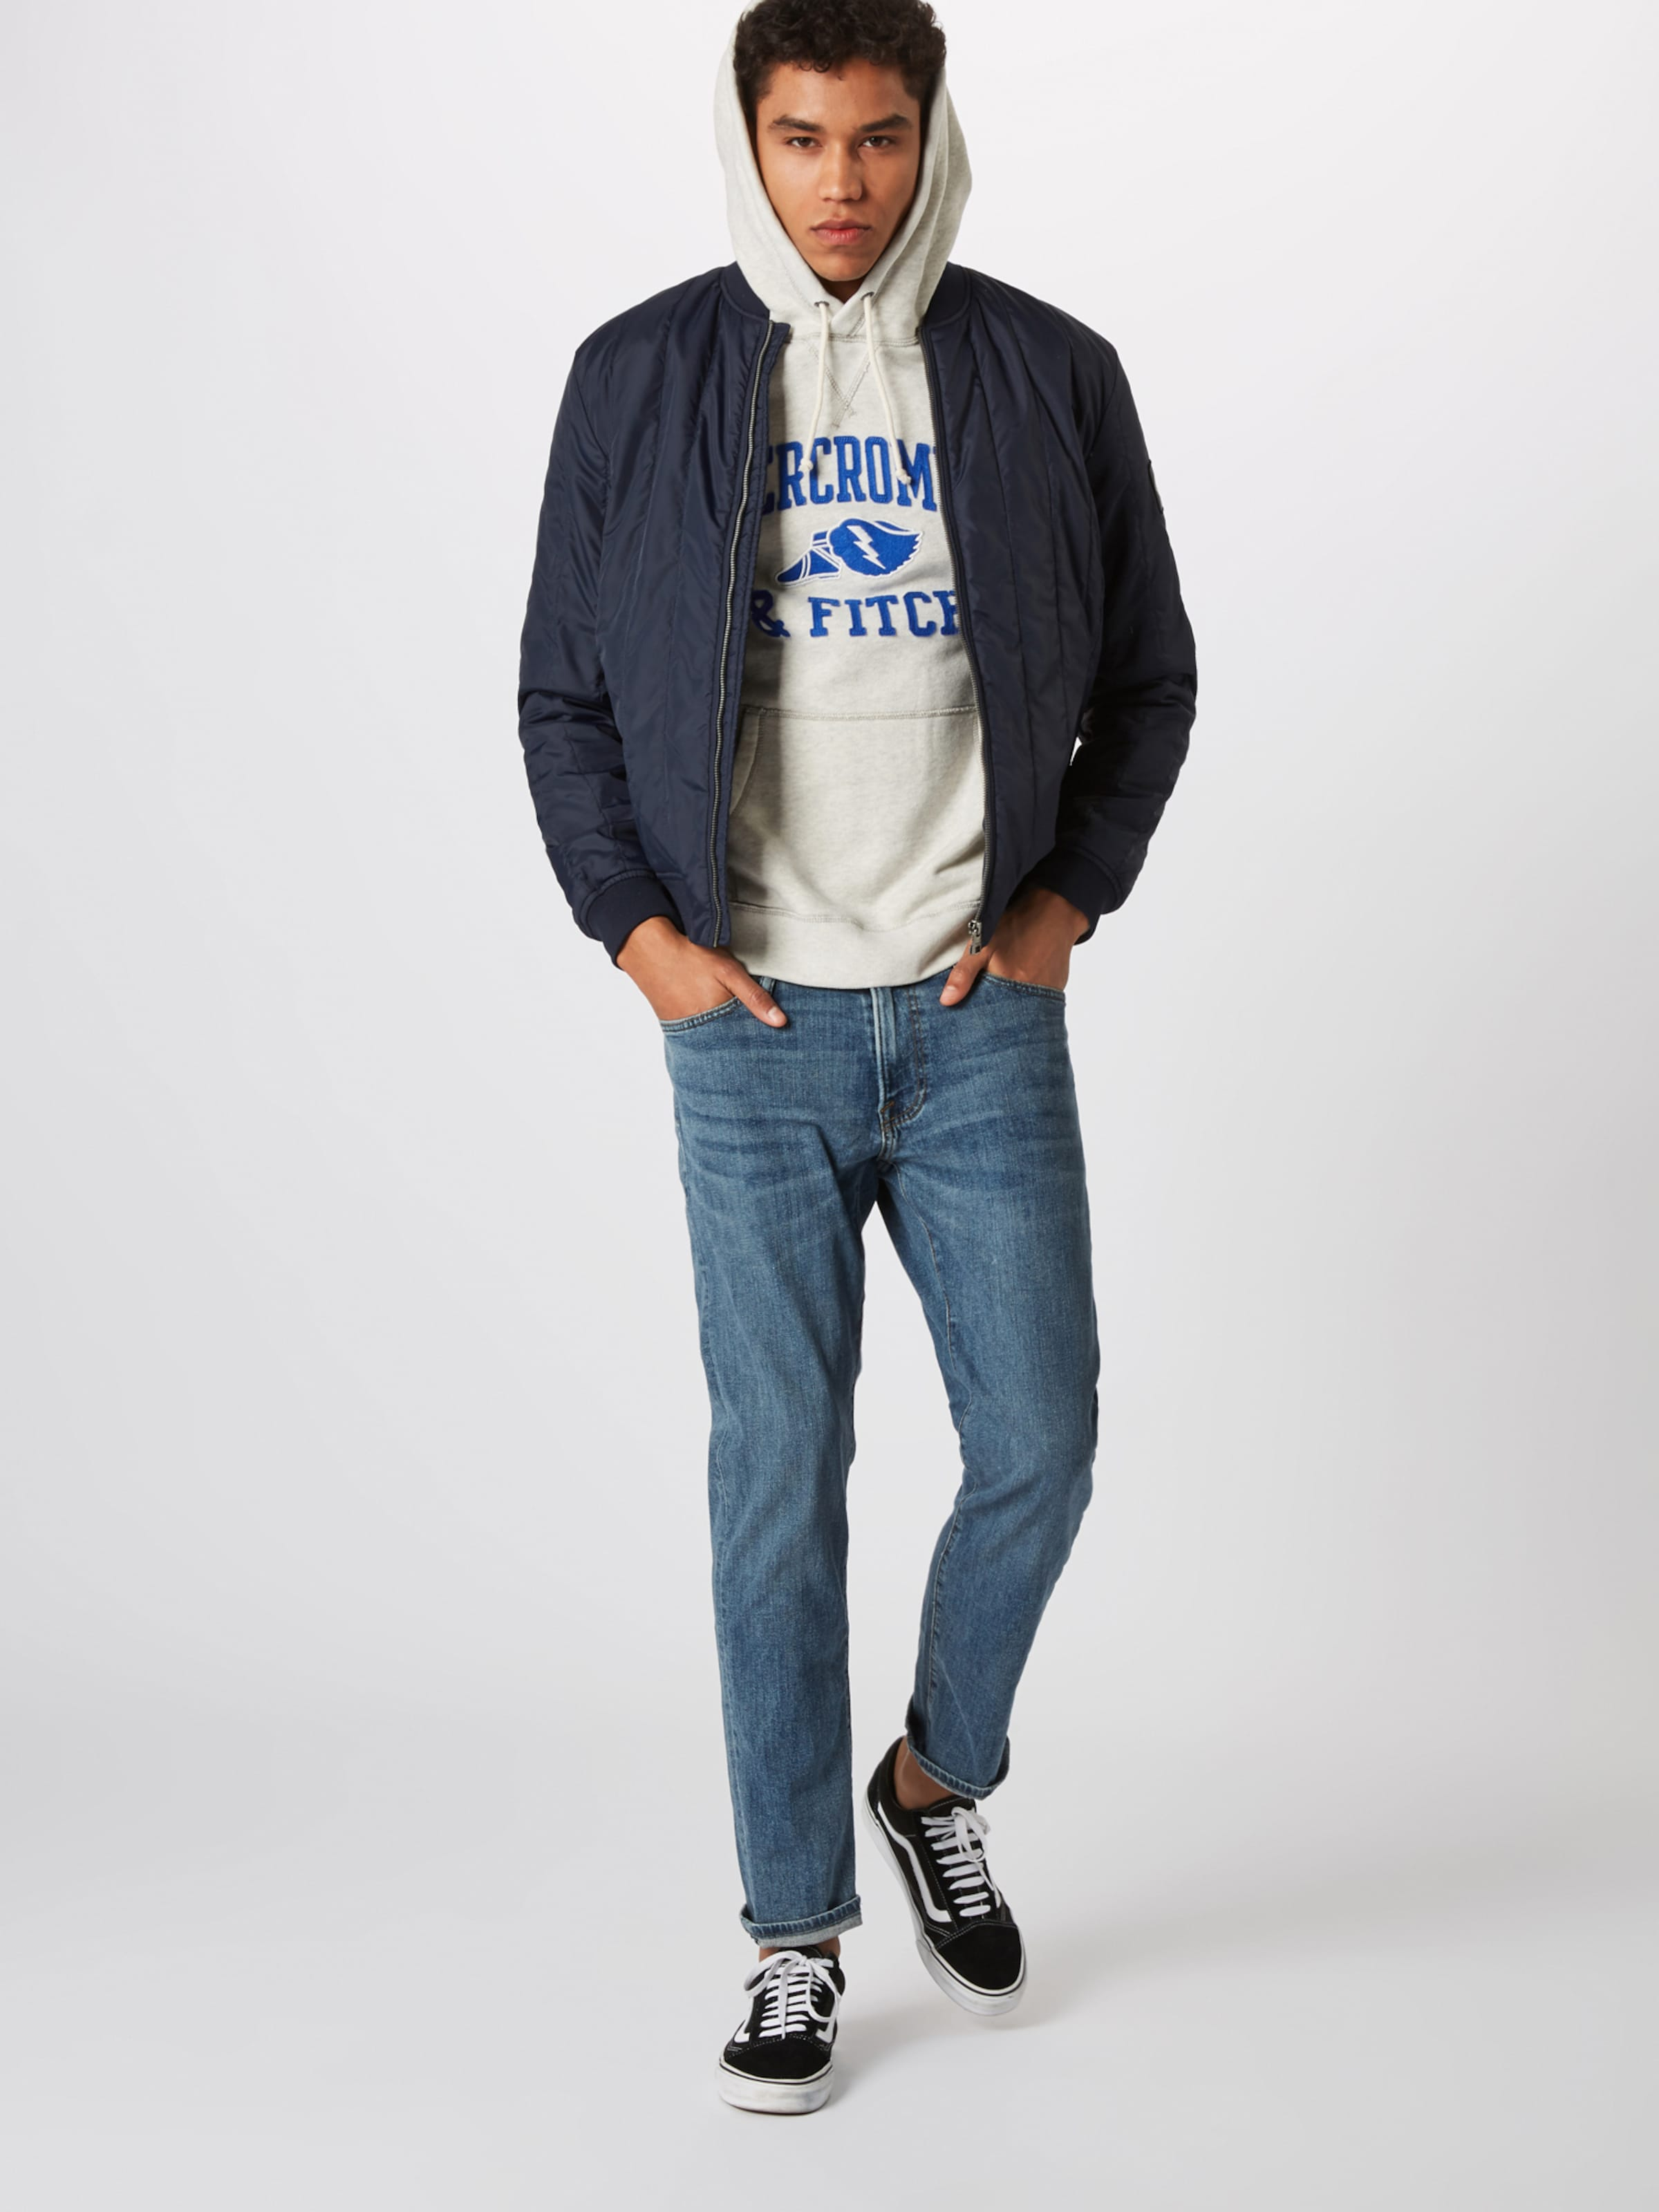 Popover' Sweat En shirt BleuGris Abercrombieamp; Fitch Club 'athletic tsQrCdxh